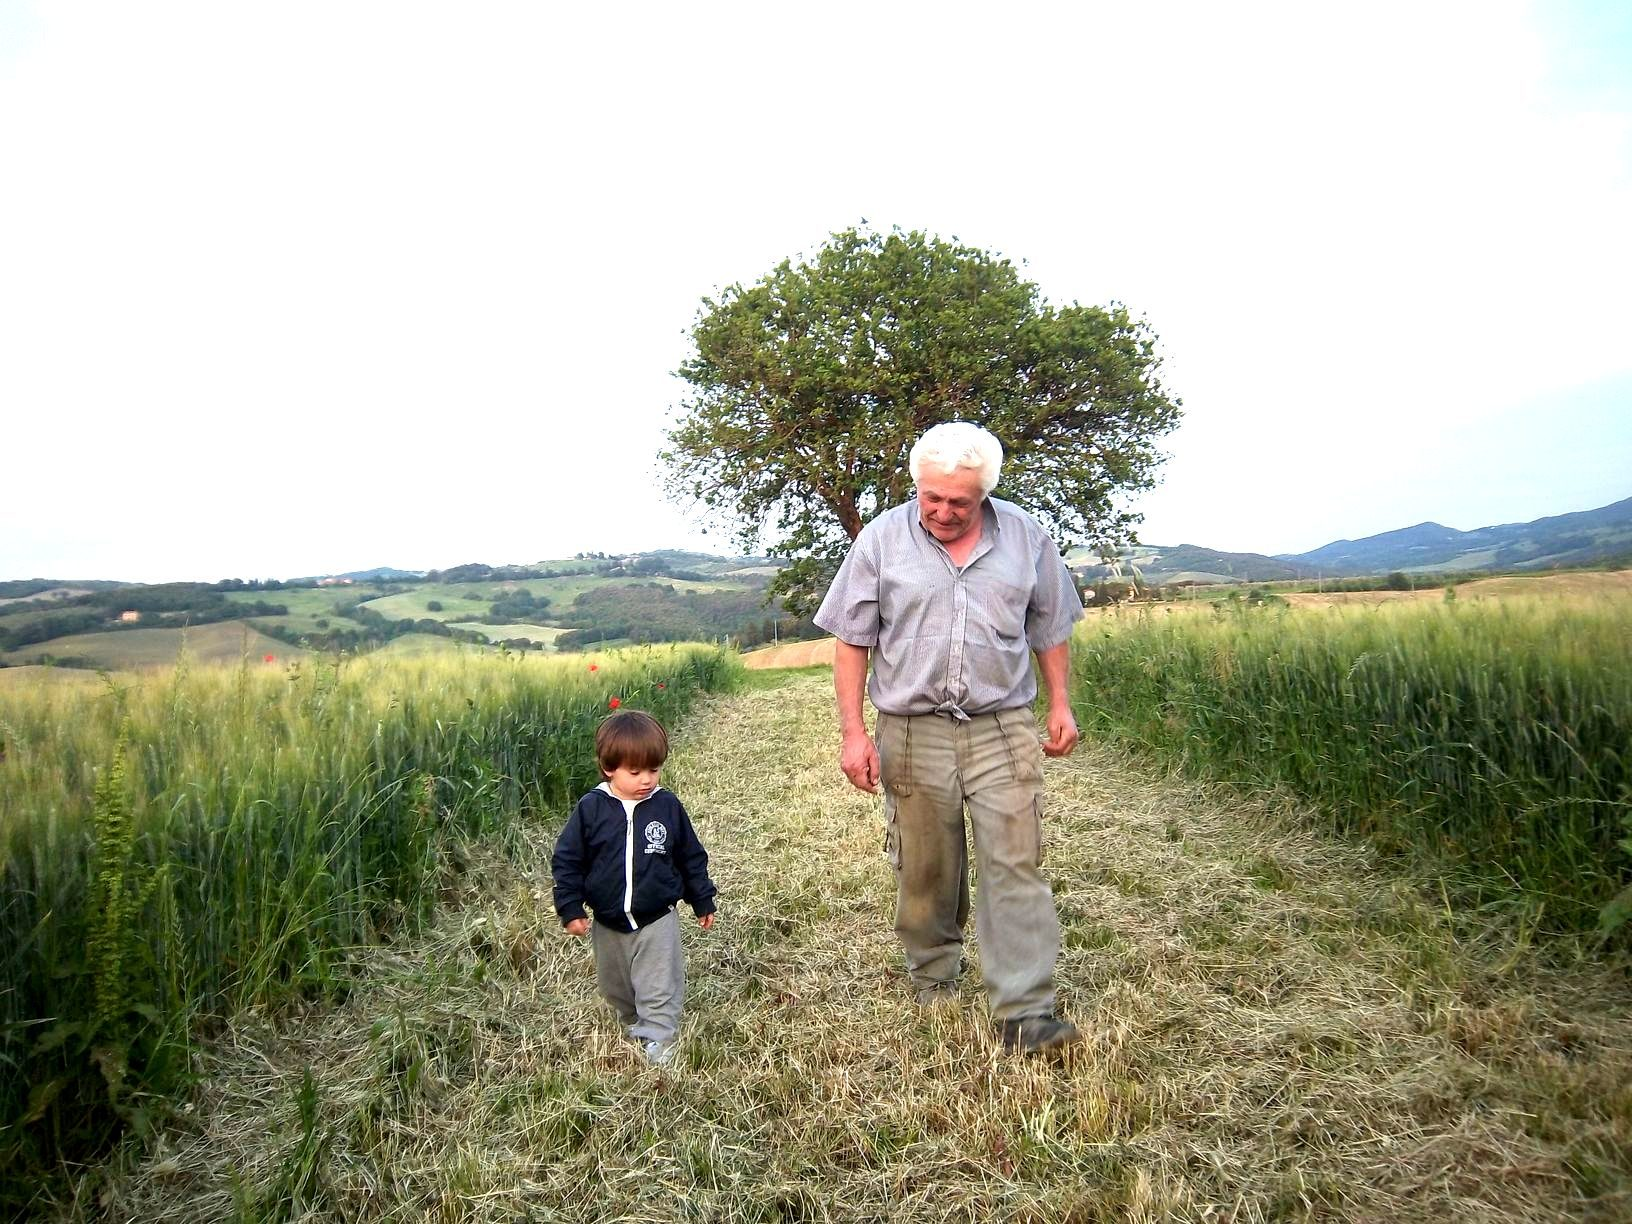 an old man and a young boy walking in a field Le Selvole Farmhouse